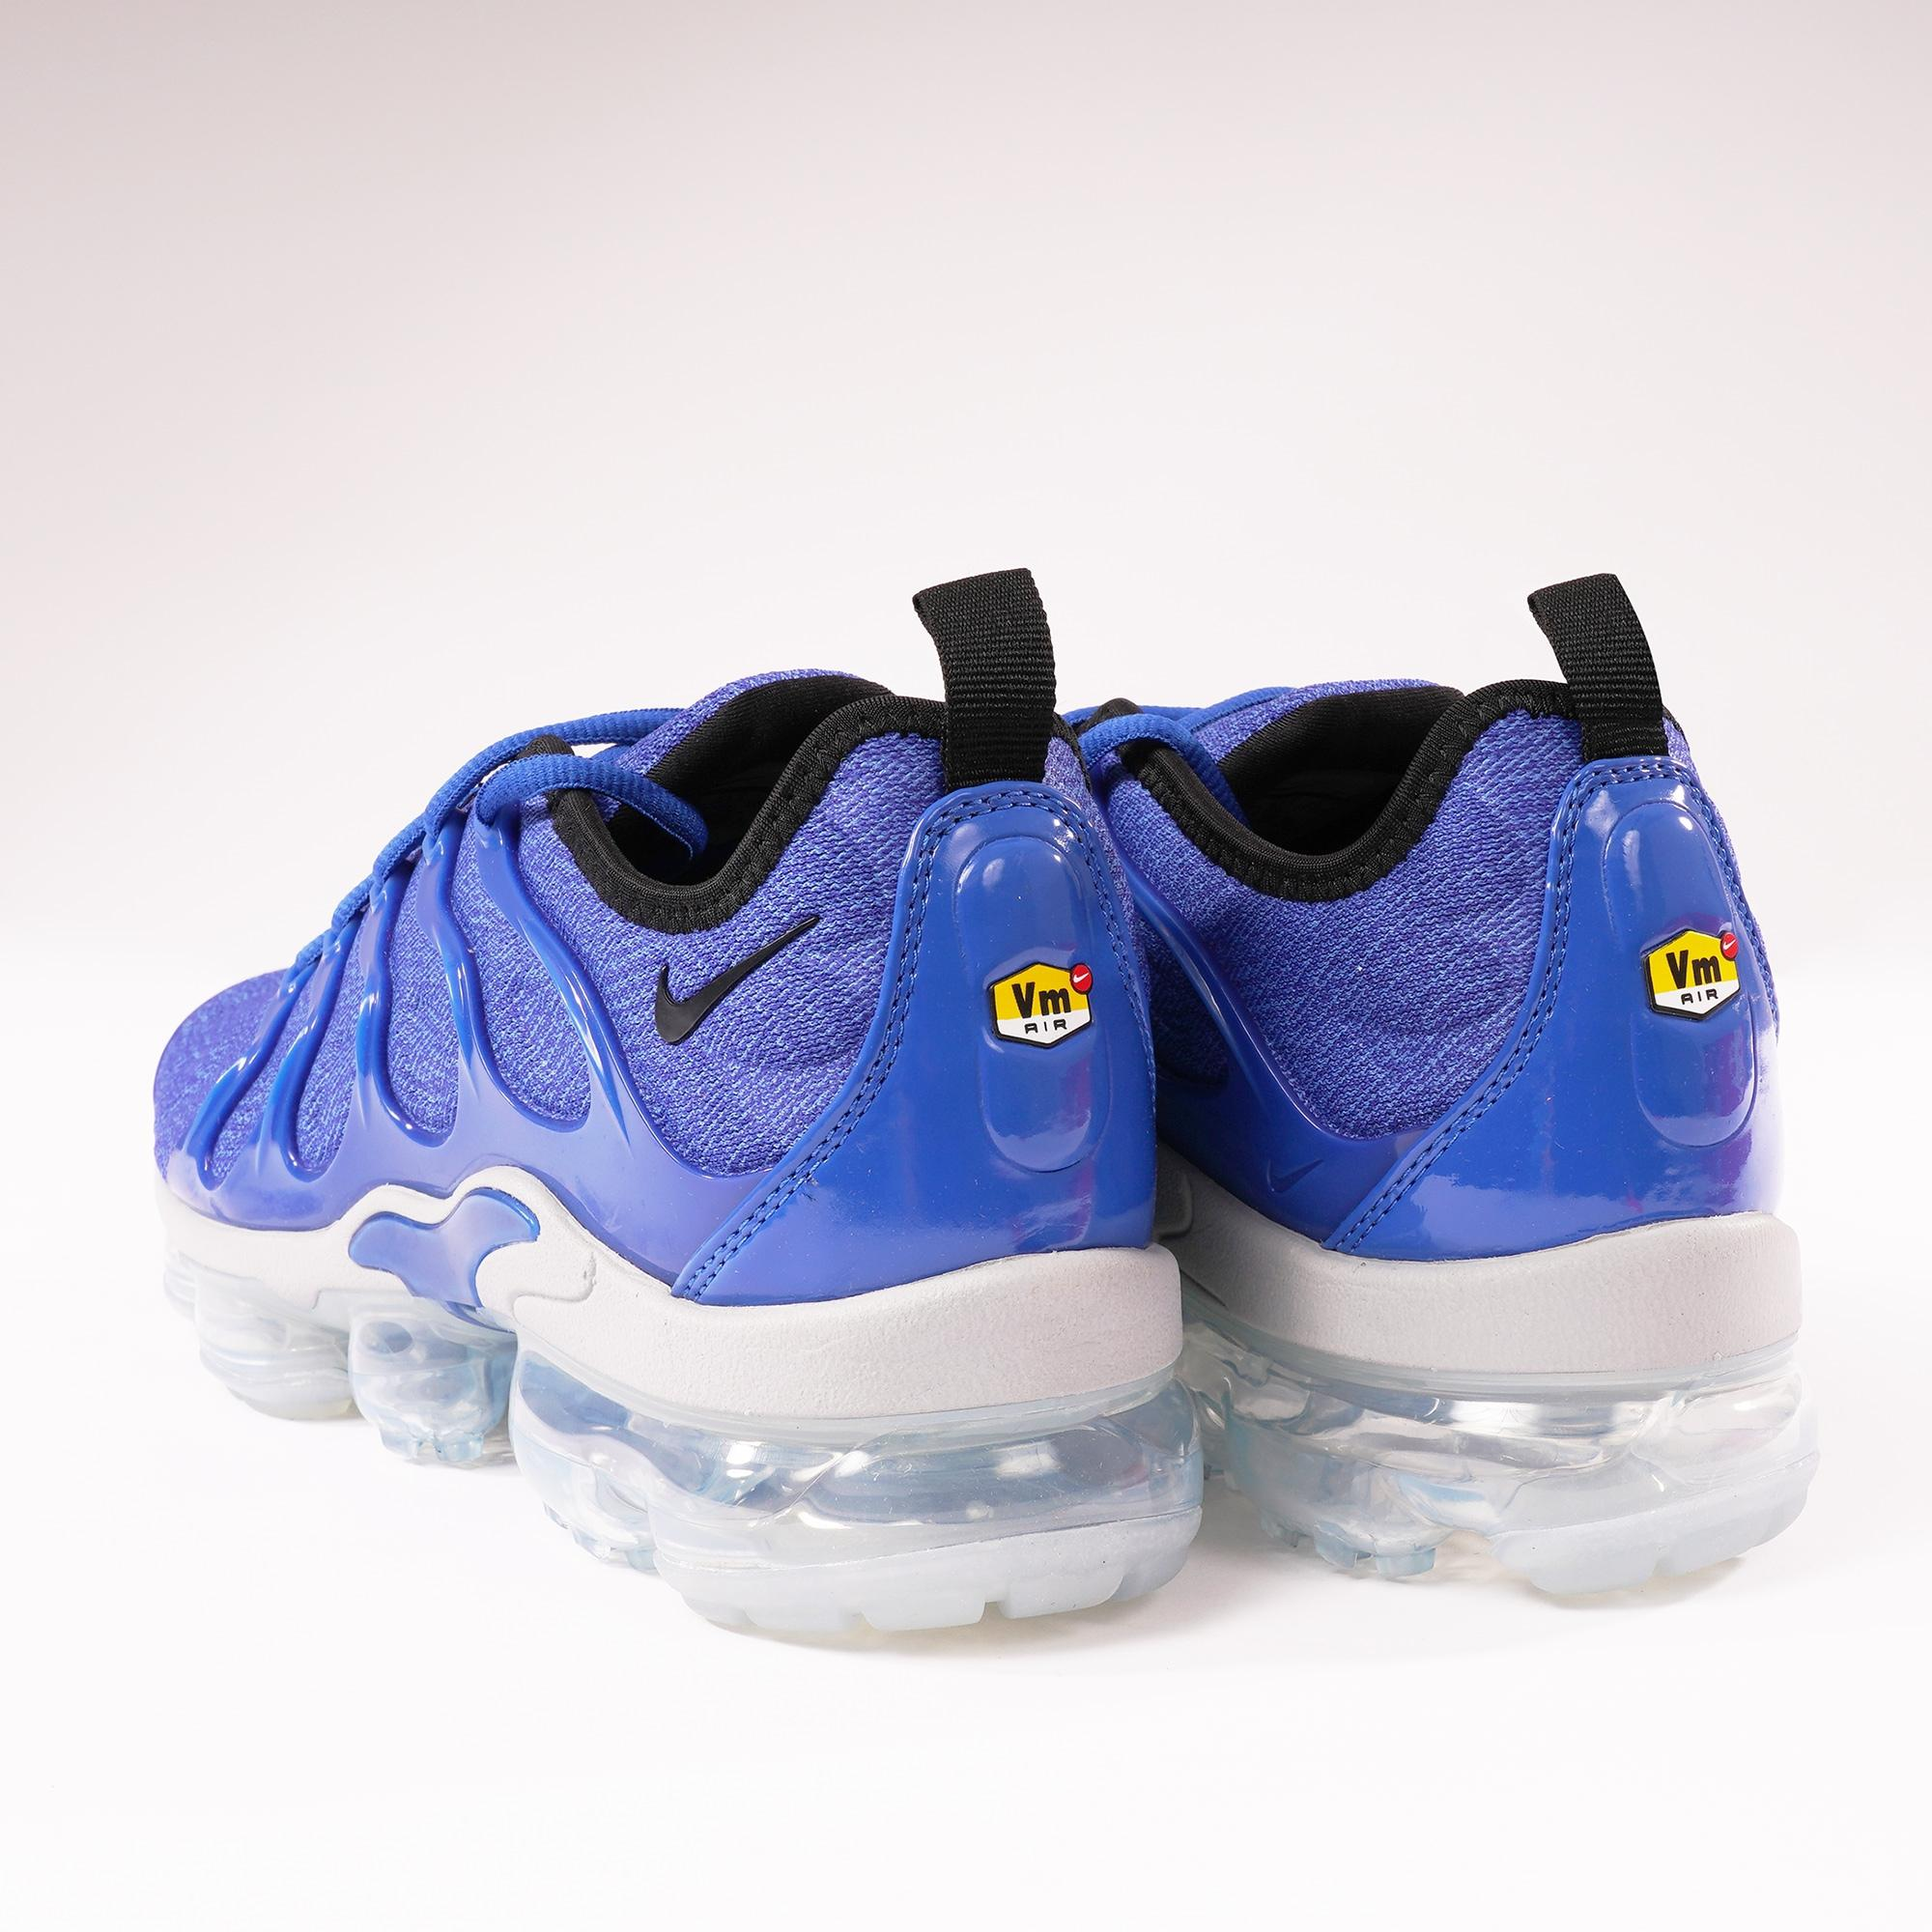 9a88f3c127 Nike Air Vapormax Plus - Game Royal, Black & Wolf Grey in Blue for ...